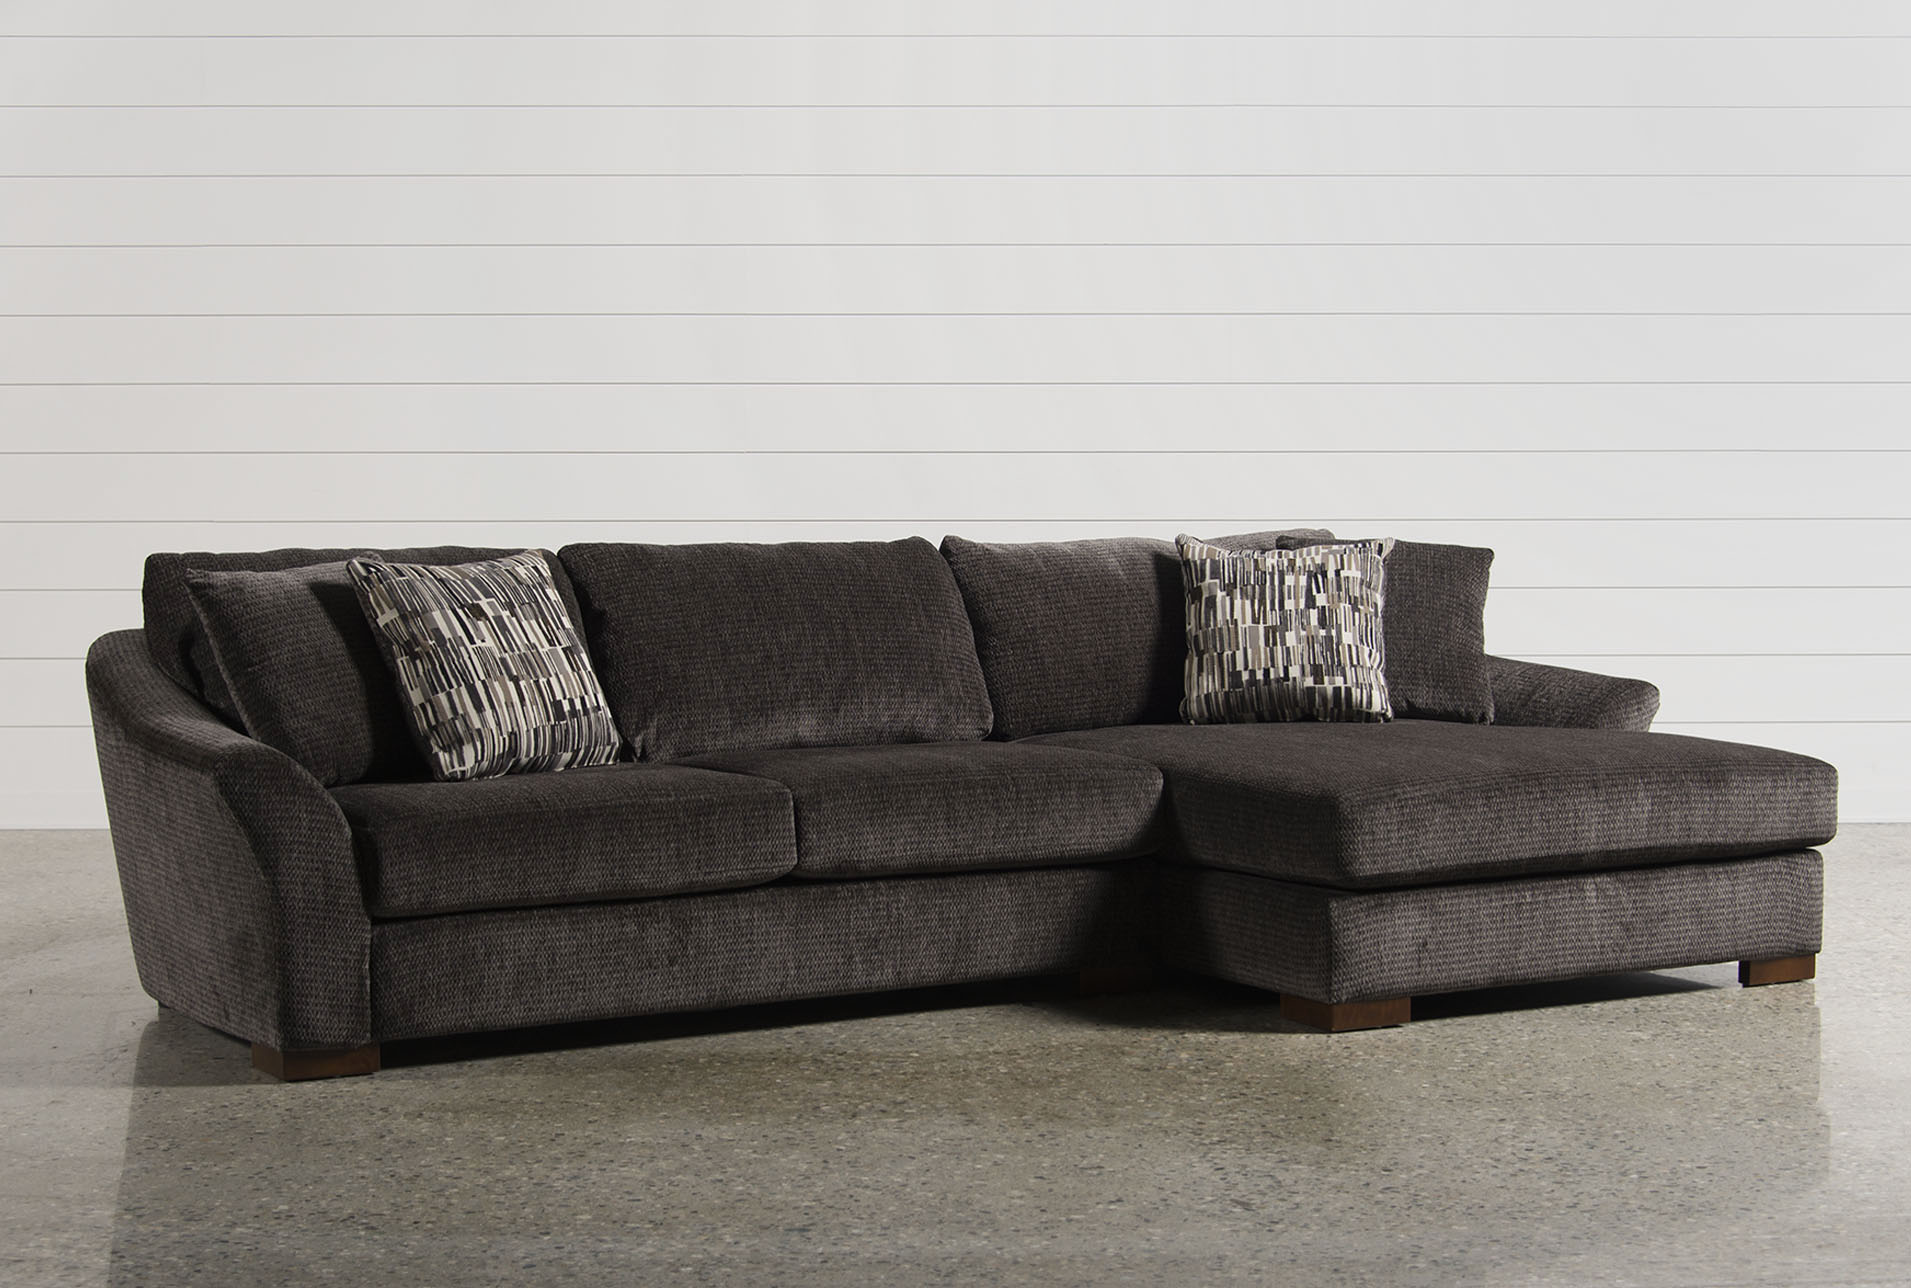 Small Sectional Couch. Evan 2 Piece Sectional W/raf Chaise Small Couch